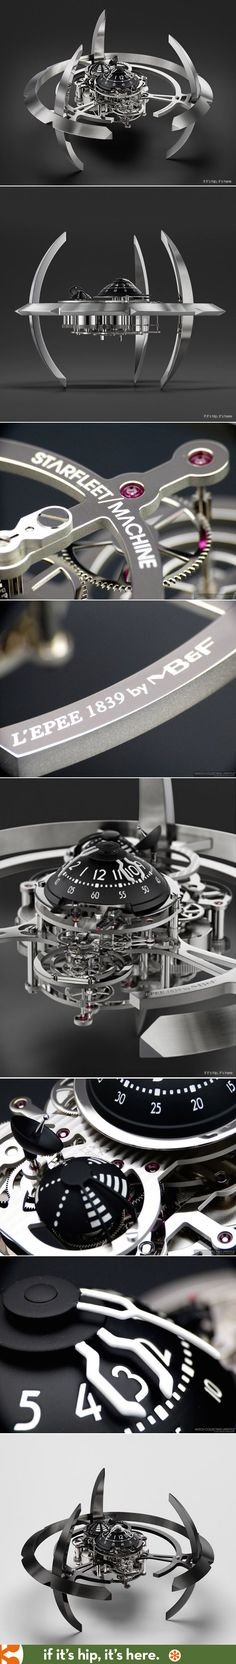 The Starfleet Time Machine. A limited edition table clock inspired by sci-fi (specifically Star Trek's Deep Space Nine) made by two French horology companies.